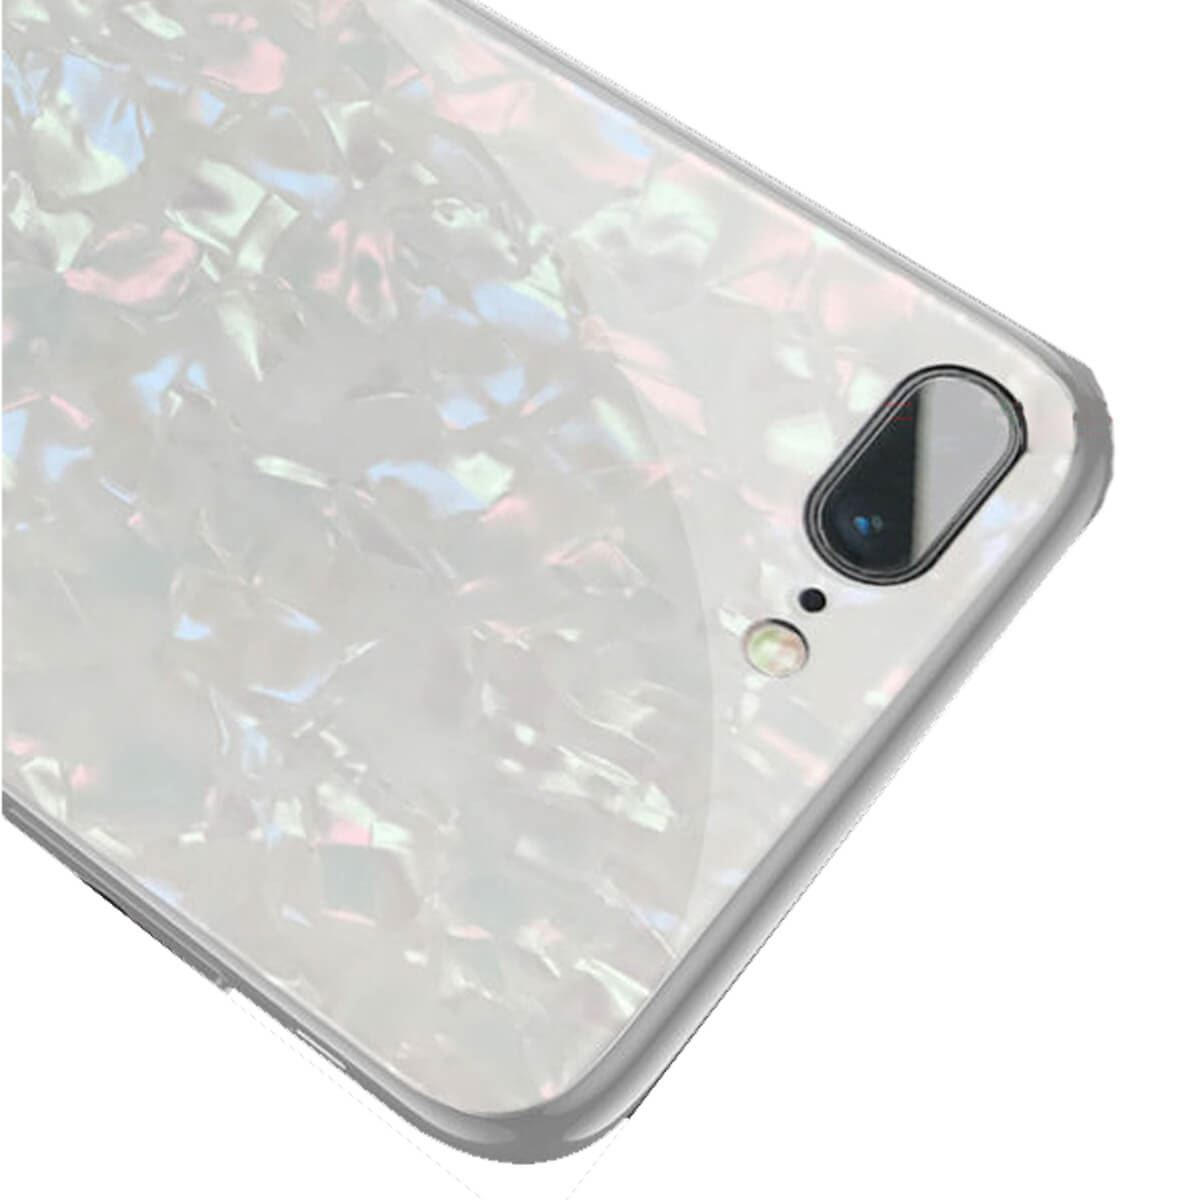 Marble-Tempered-Glass-Case-For-Apple-iPhone-X-XS-XR-Max-10-8-7-6s-6-Luxury-Cover thumbnail 23